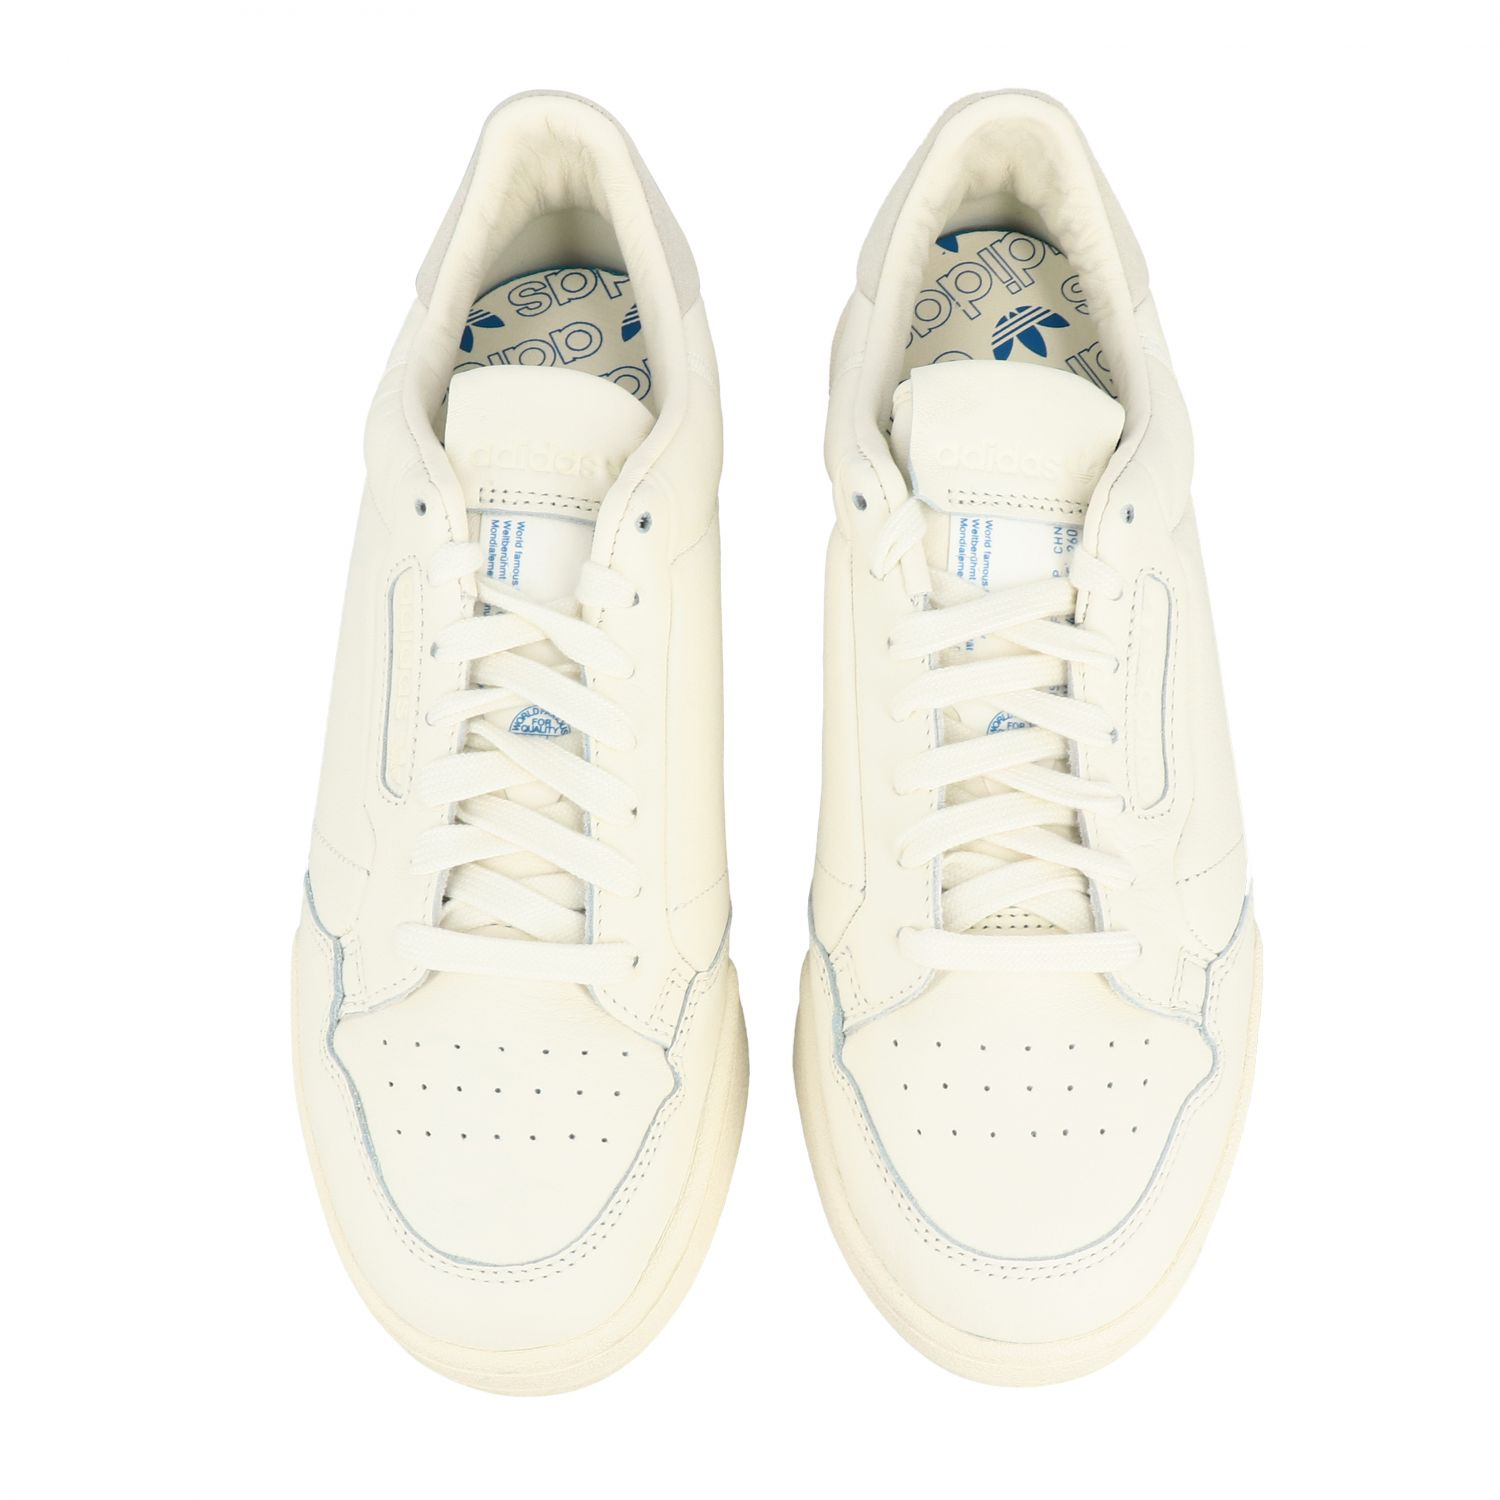 Sneakers Adidas Originals: Continental 80 Adidas Originals Sneakers aus Leder yellow cream 3